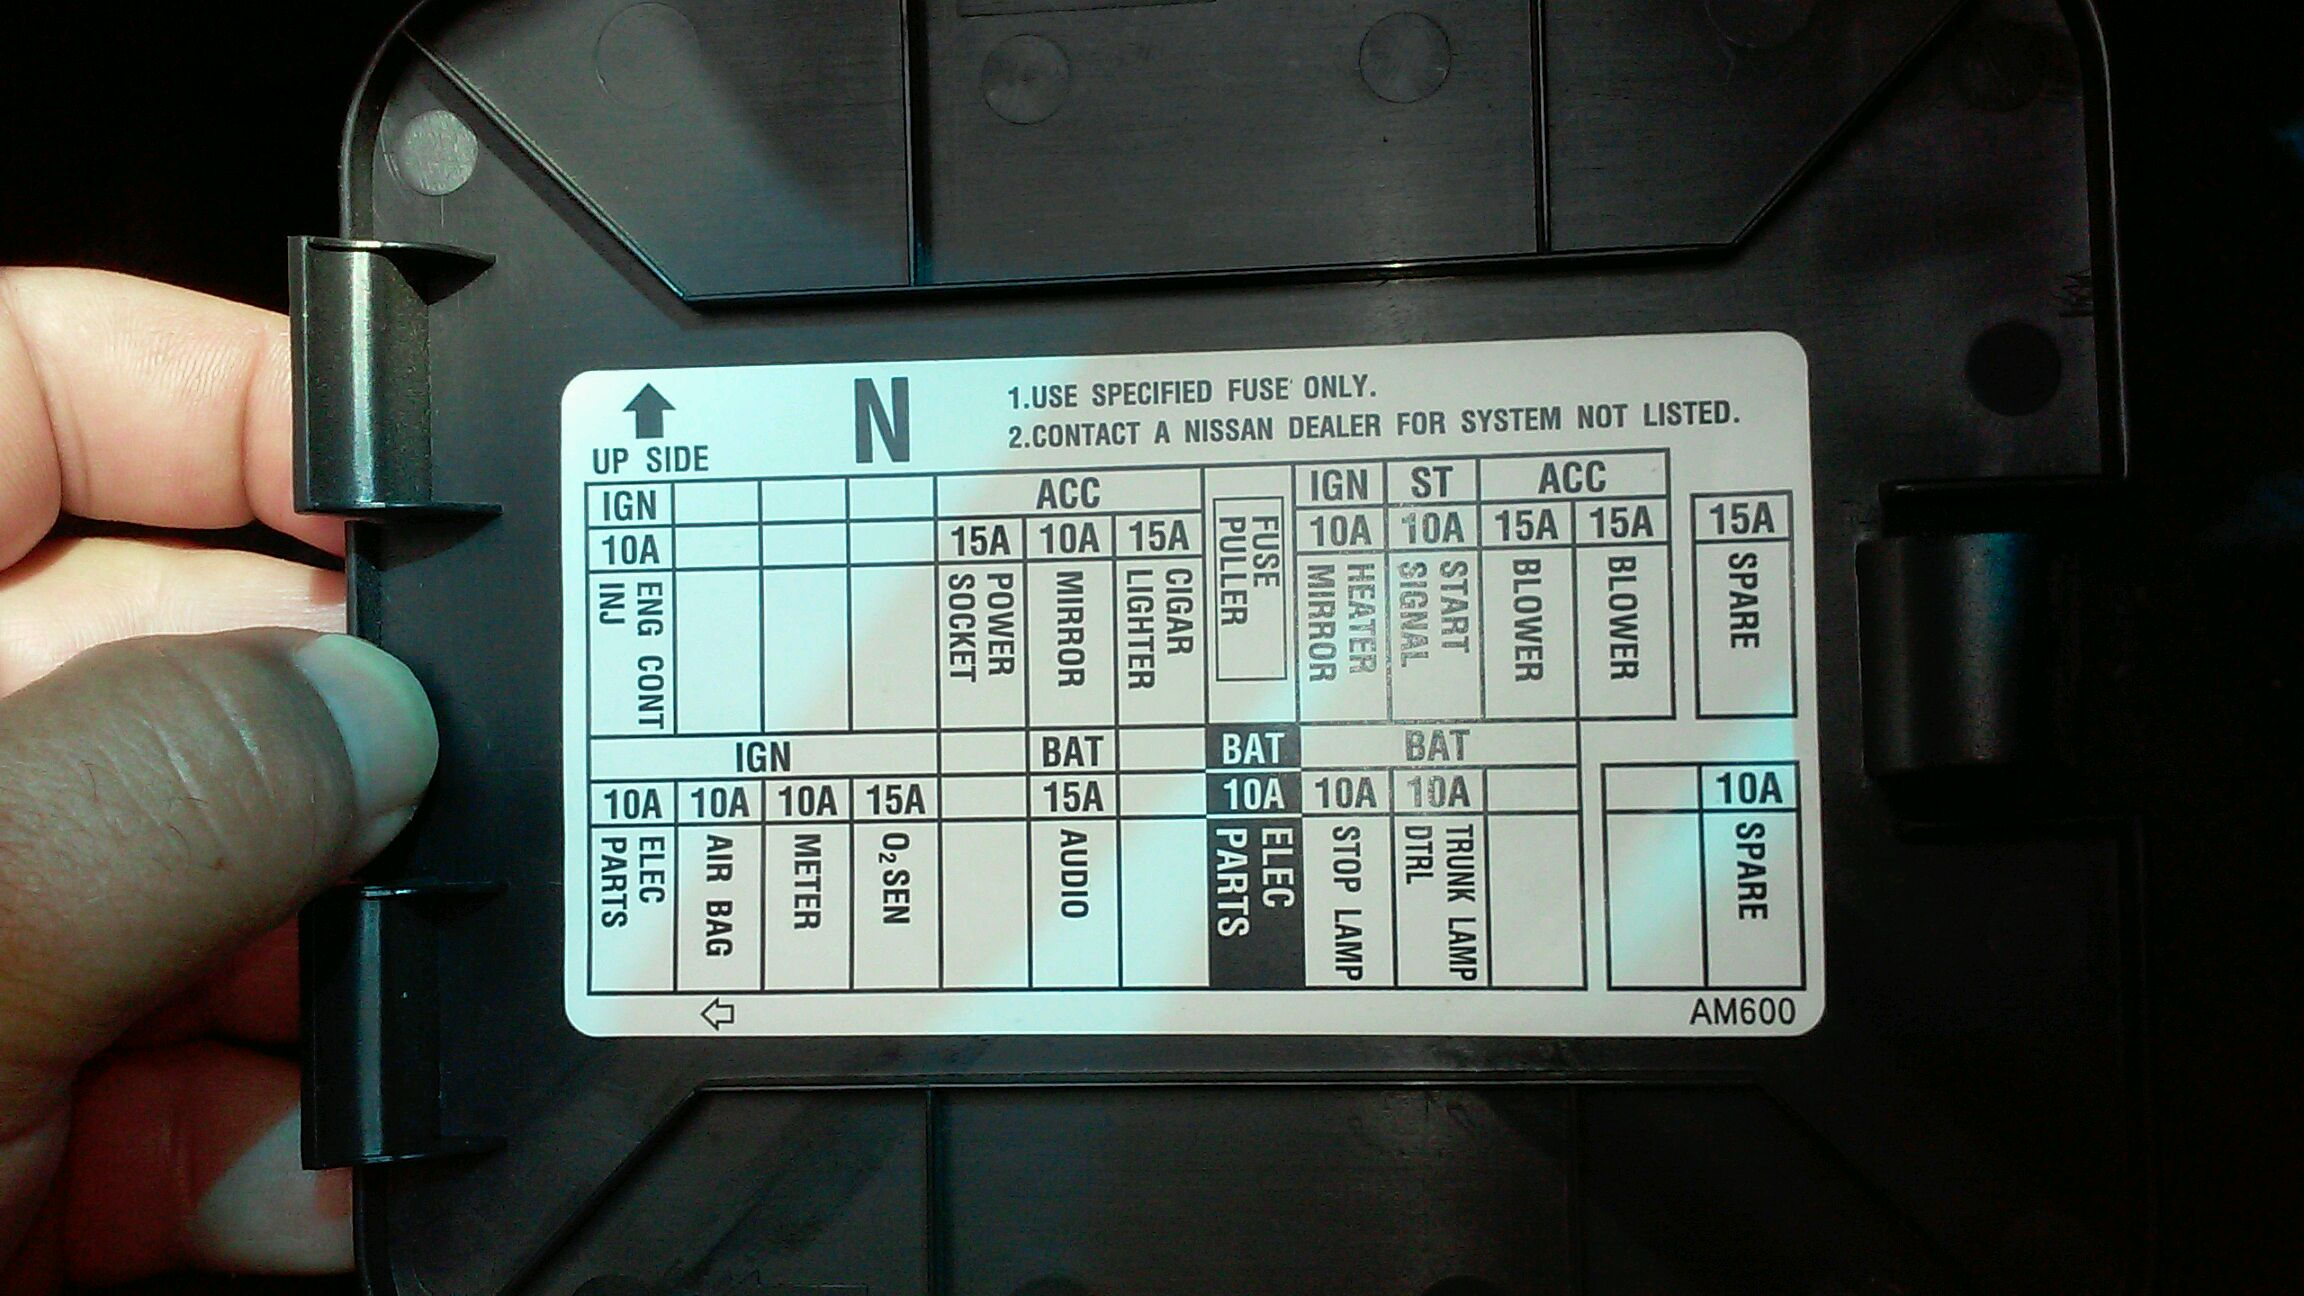 2004 G35 Fuse Box Cover - Wiring Diagram Gol Fuse Box For G on